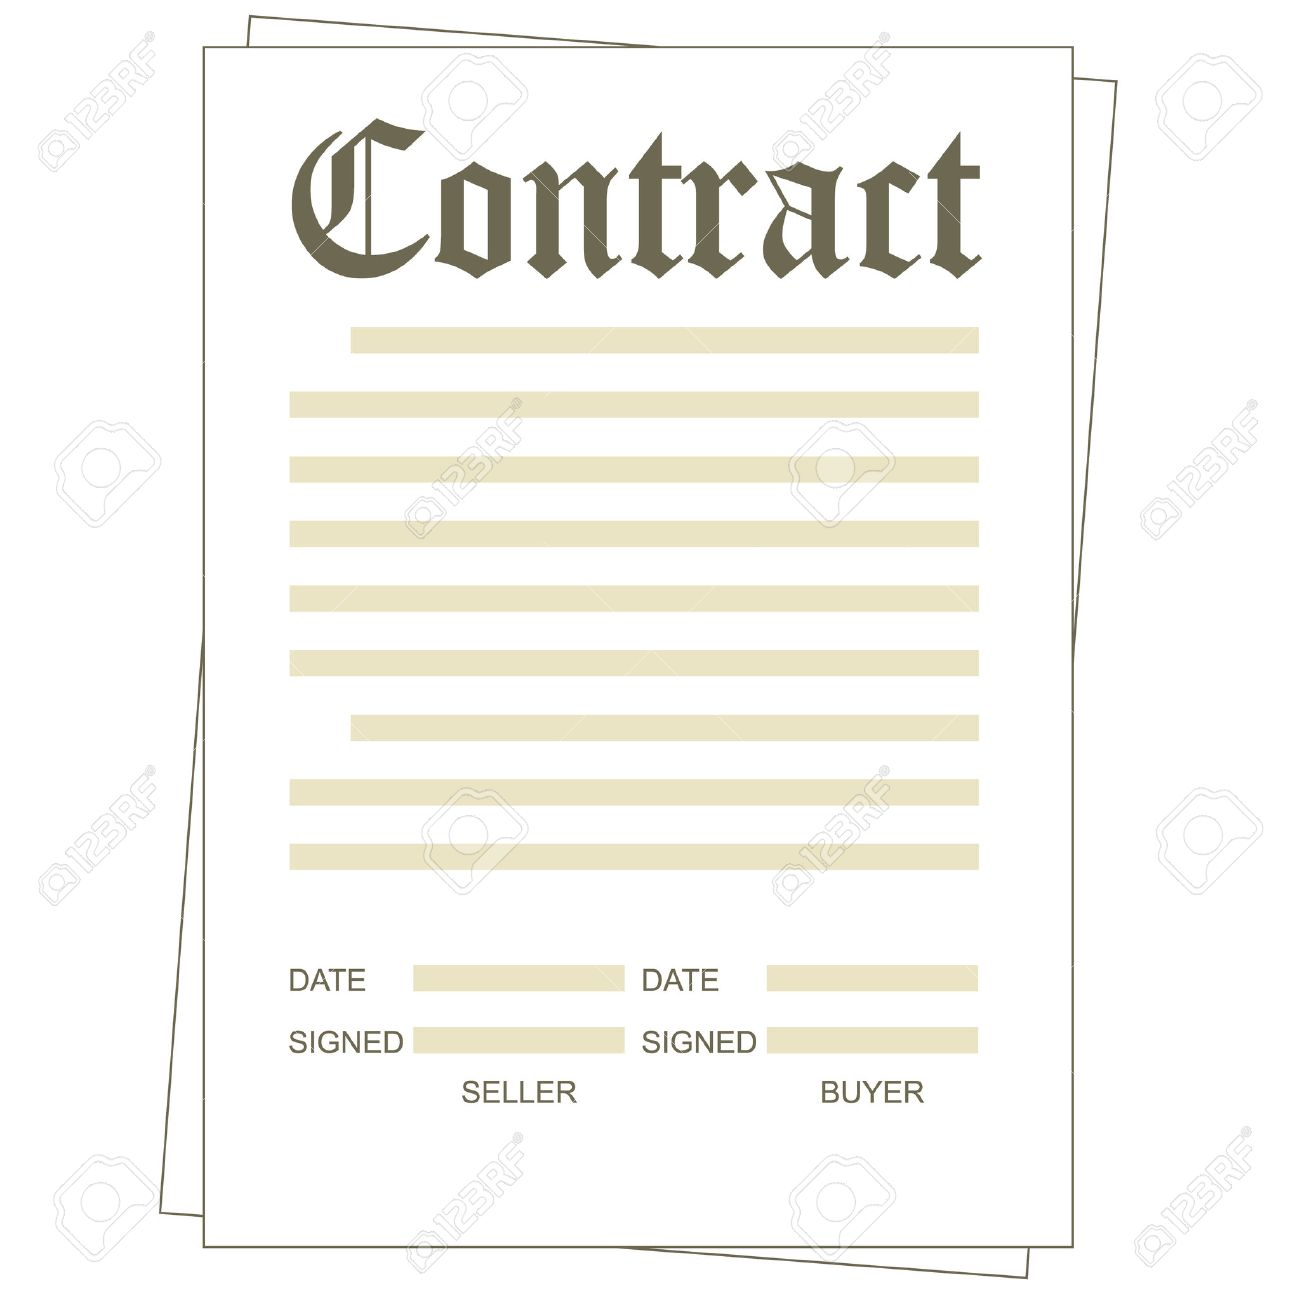 Captivating Illustration Of The Paper Blank Contract Form Stock Vector   23113599 Intended For Blank Contracts